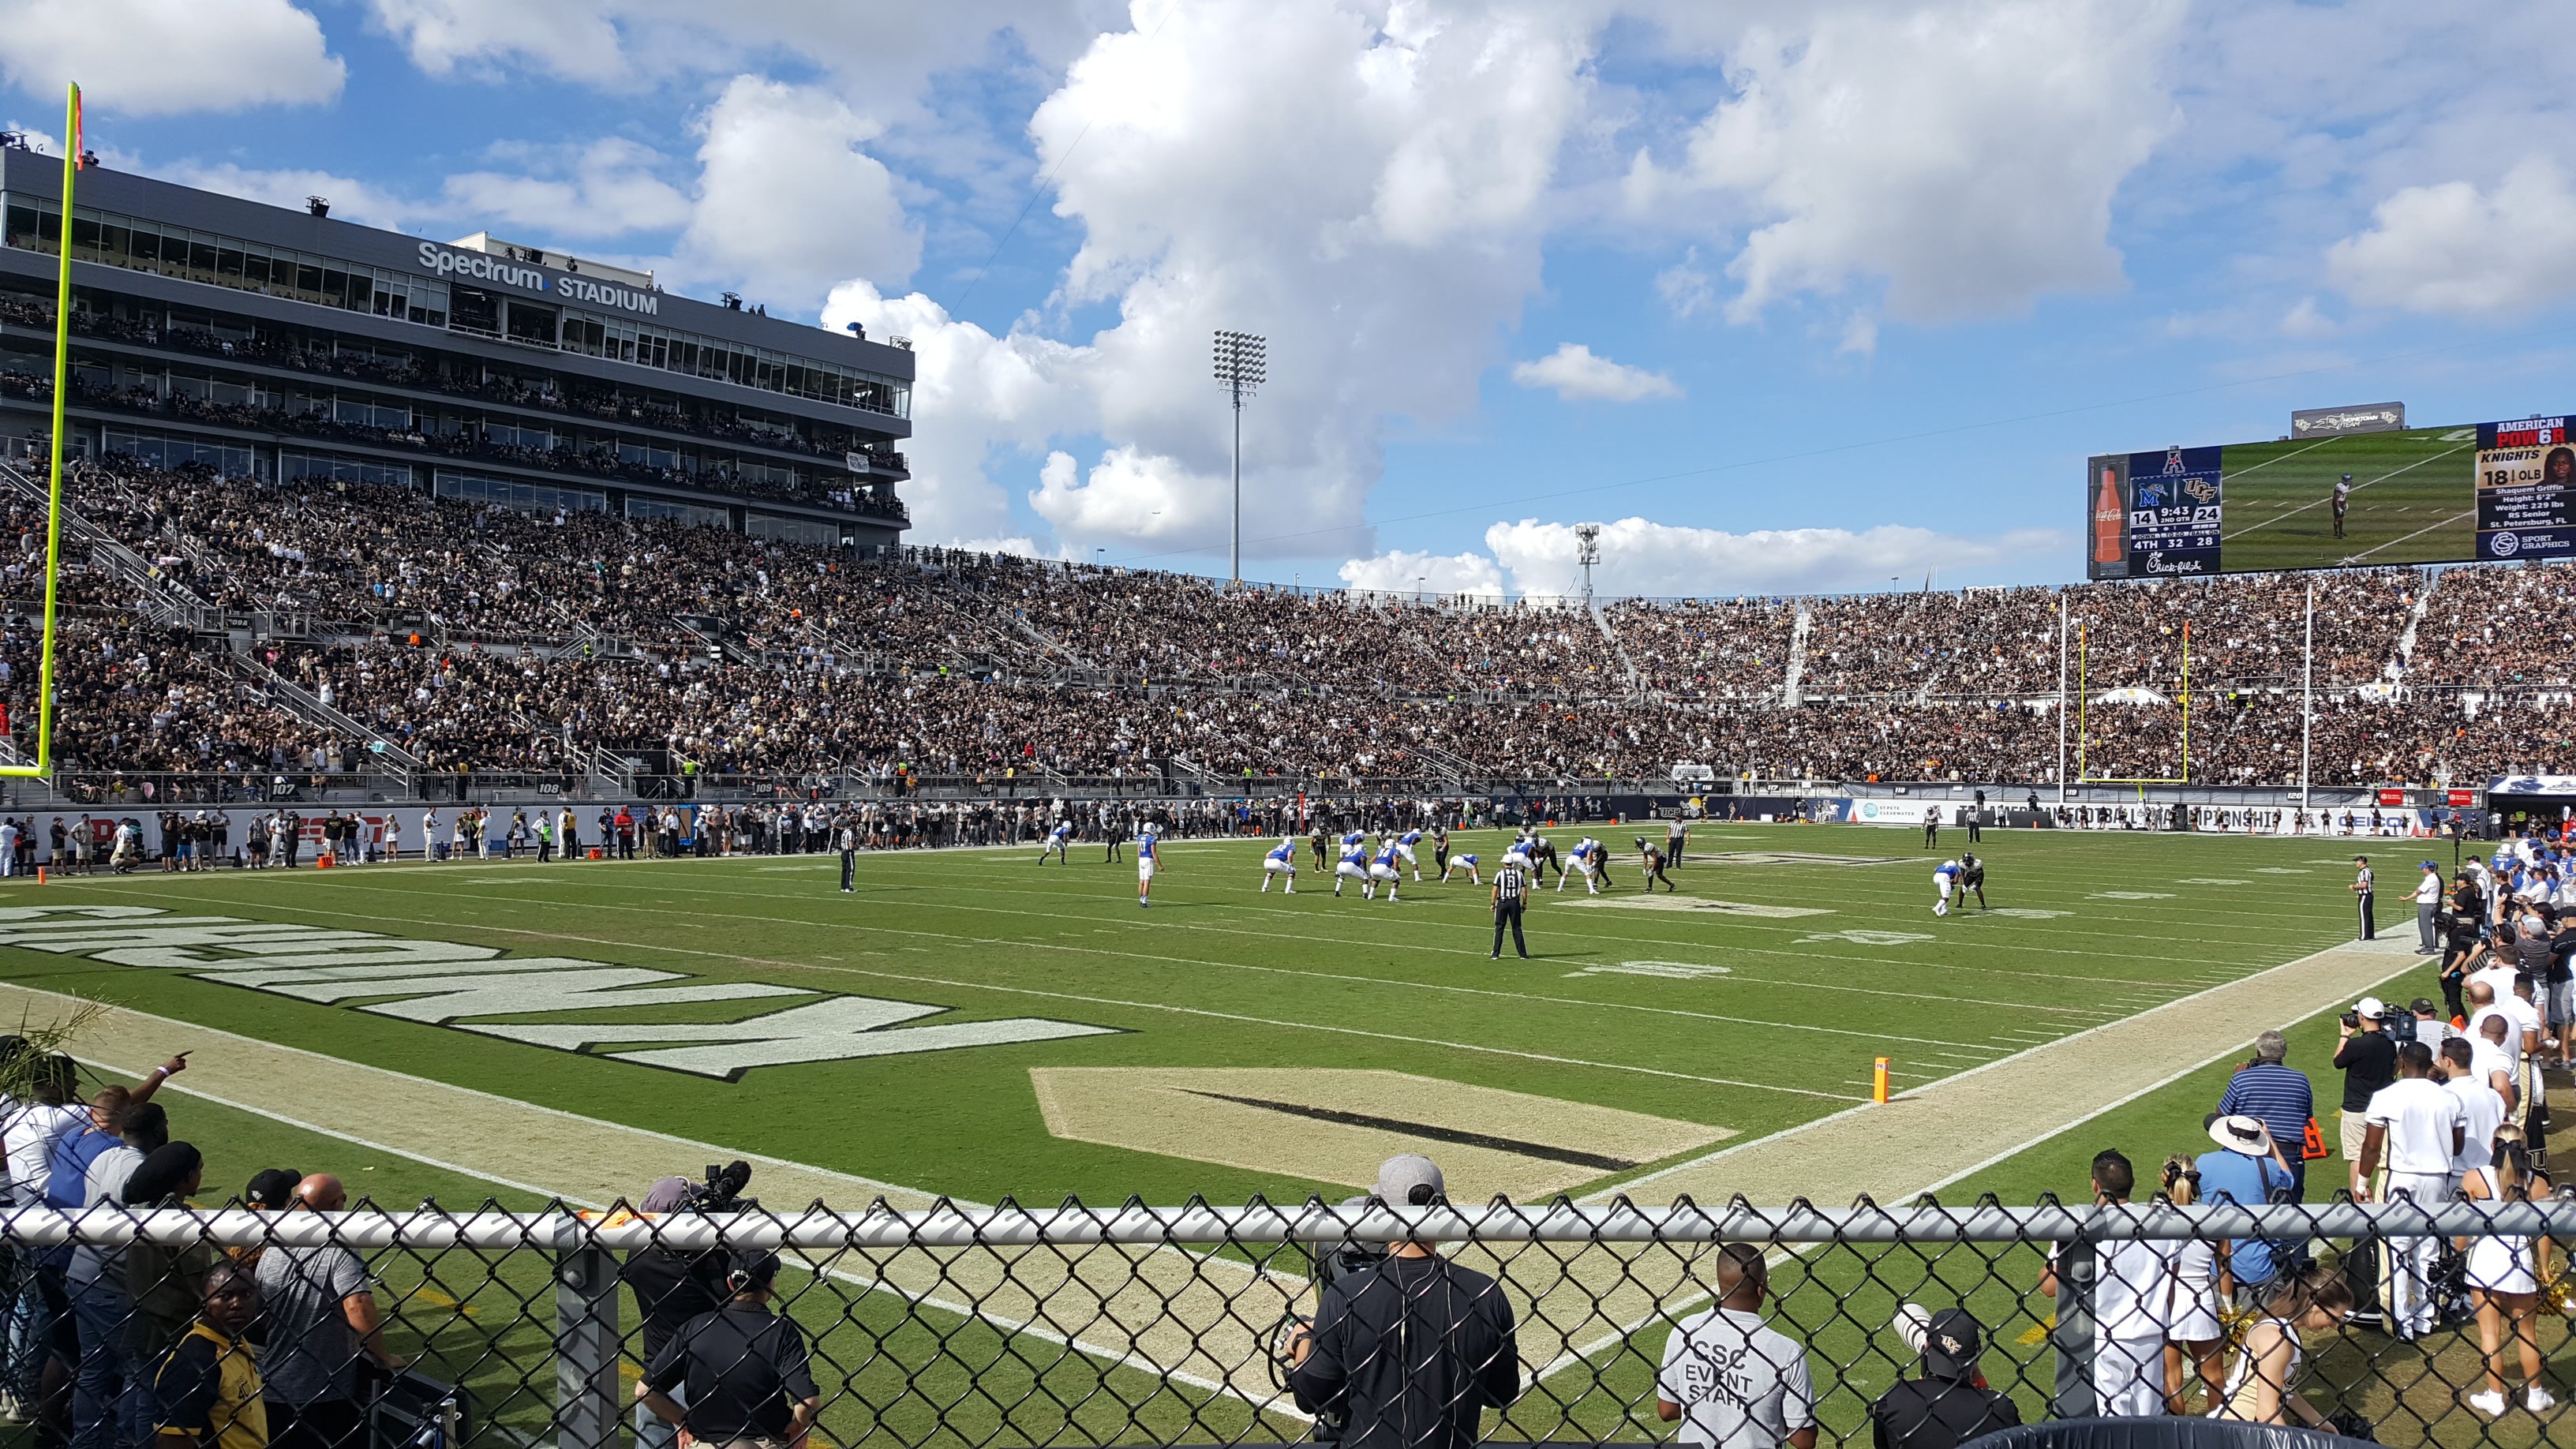 Spectrum Stadium 2017 AAC Championship Game